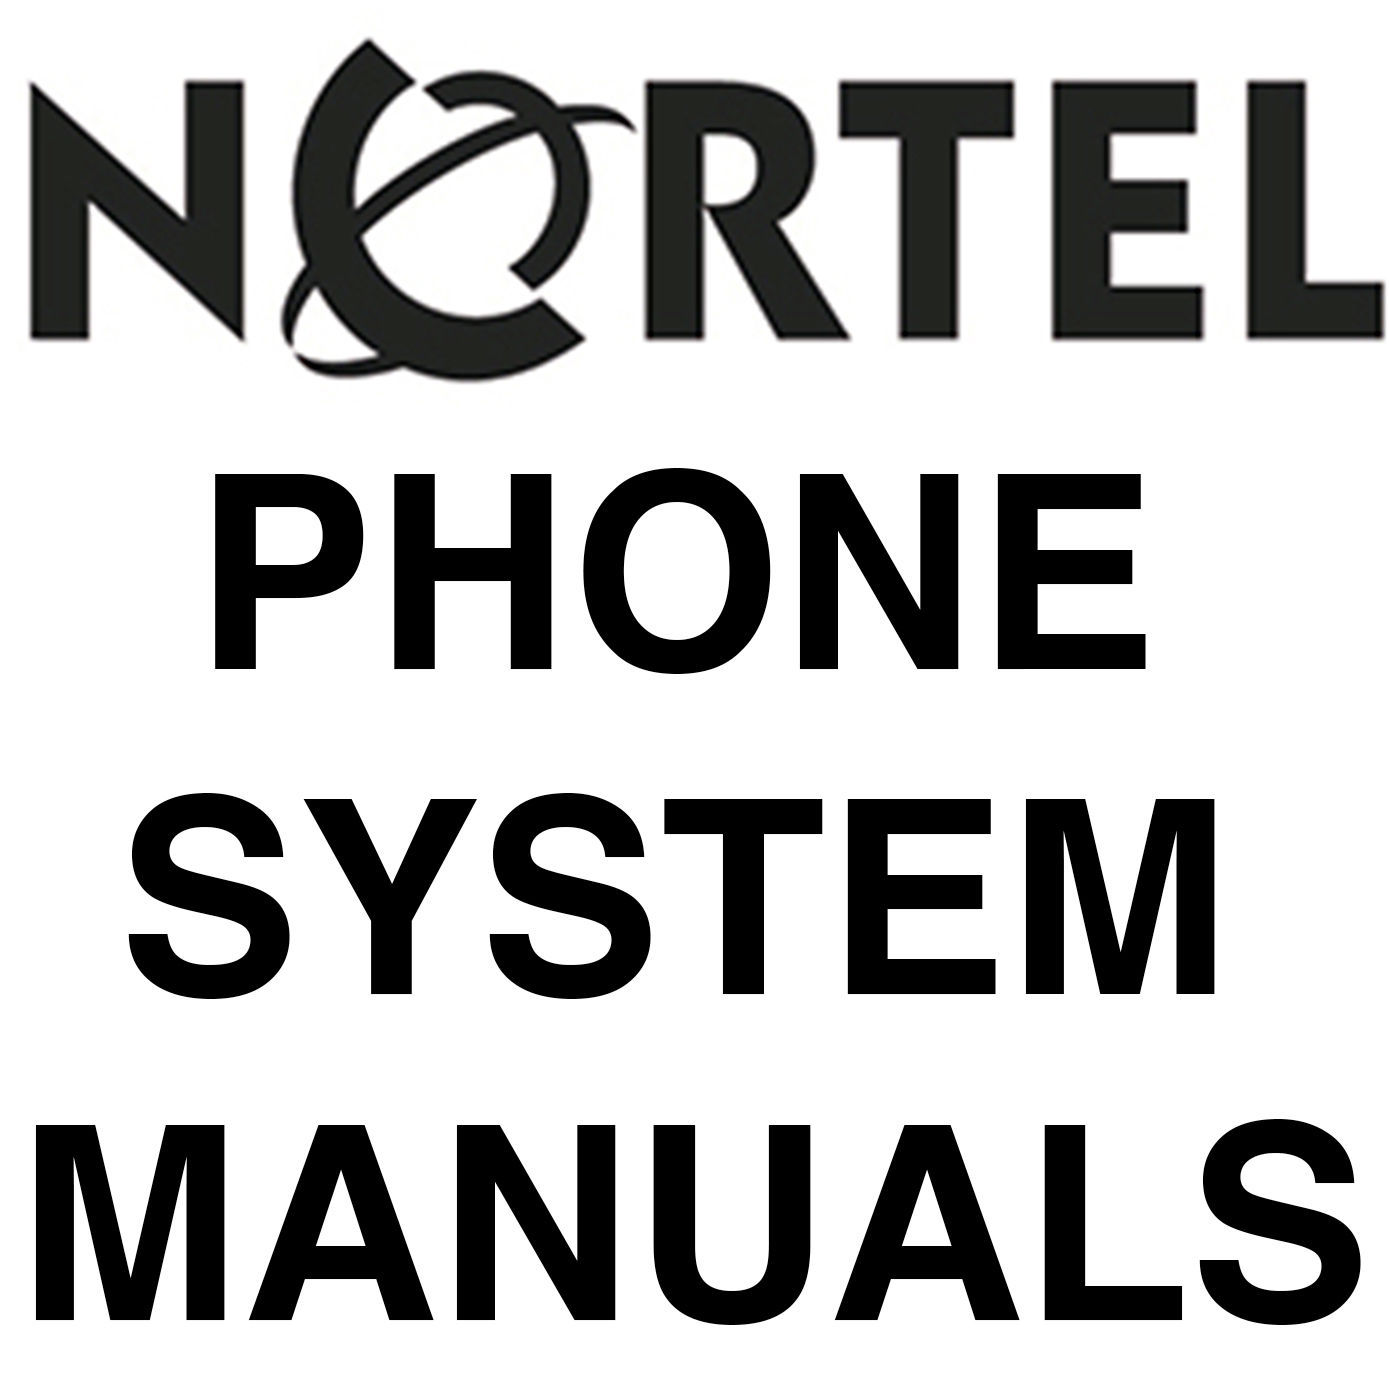 Biggest Norstar Nortel Manuals Phone System and 49 similar items